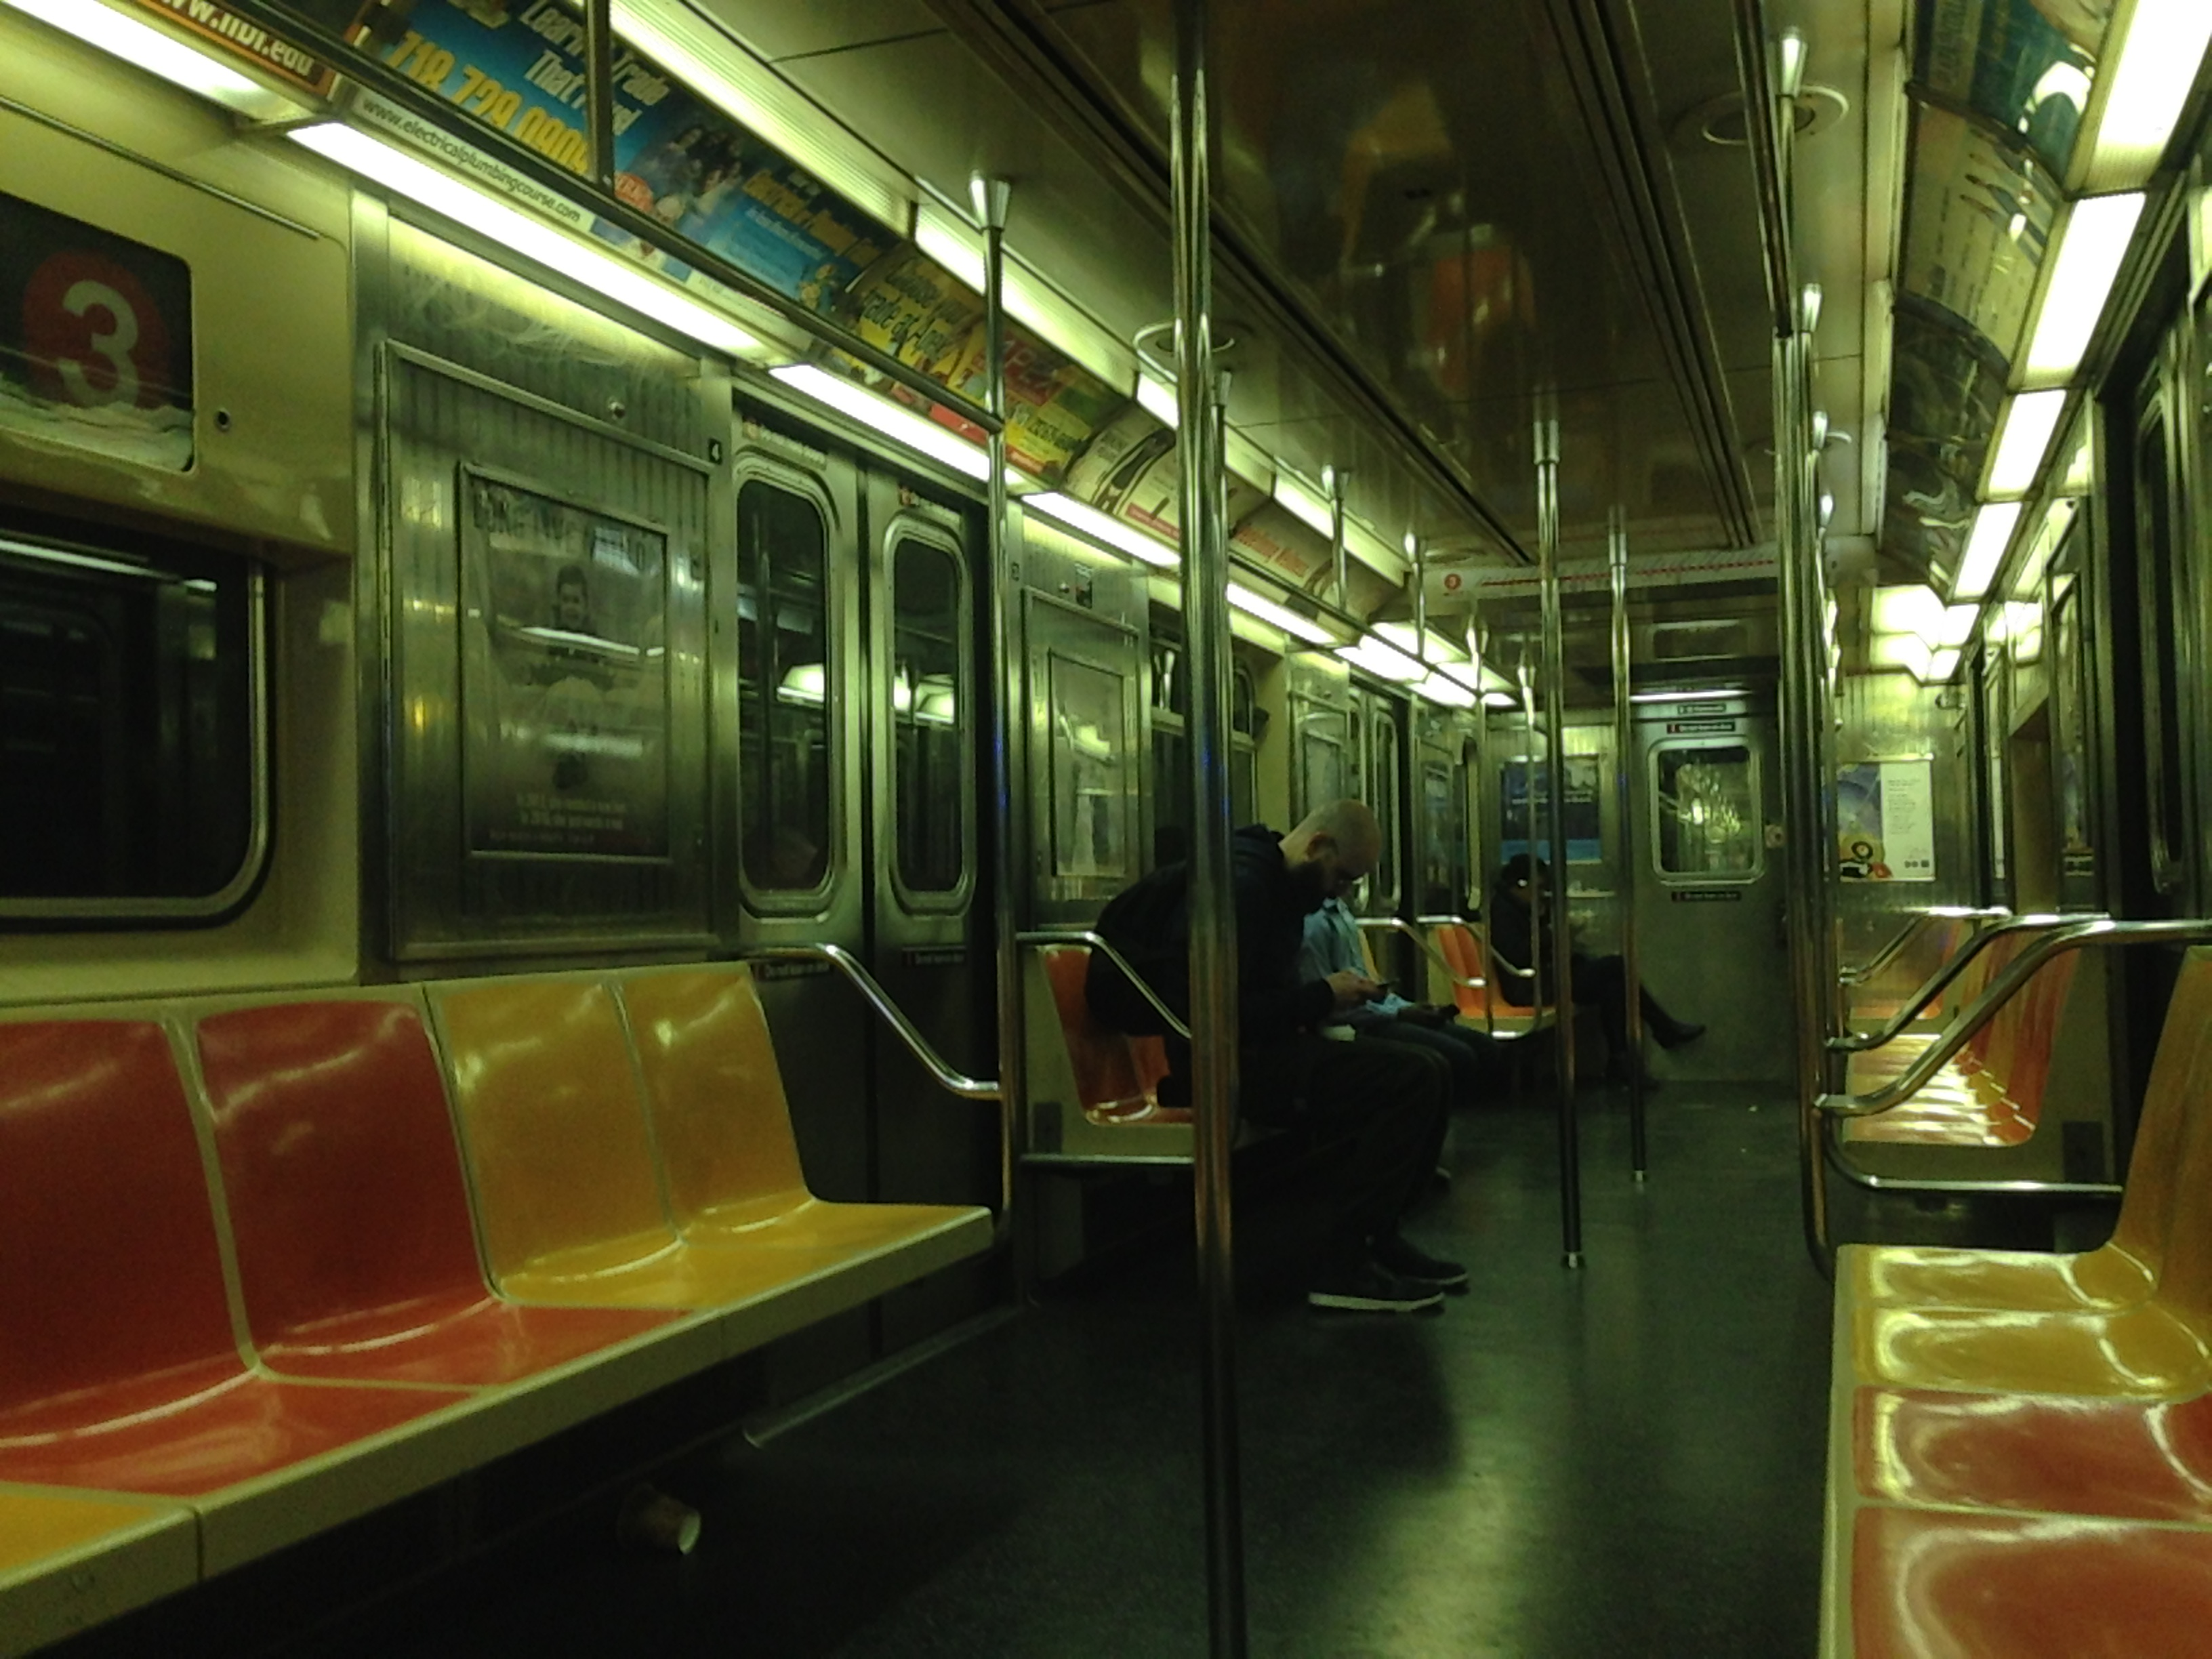 file interior of nyc subway car r62 wikimedia commons. Black Bedroom Furniture Sets. Home Design Ideas